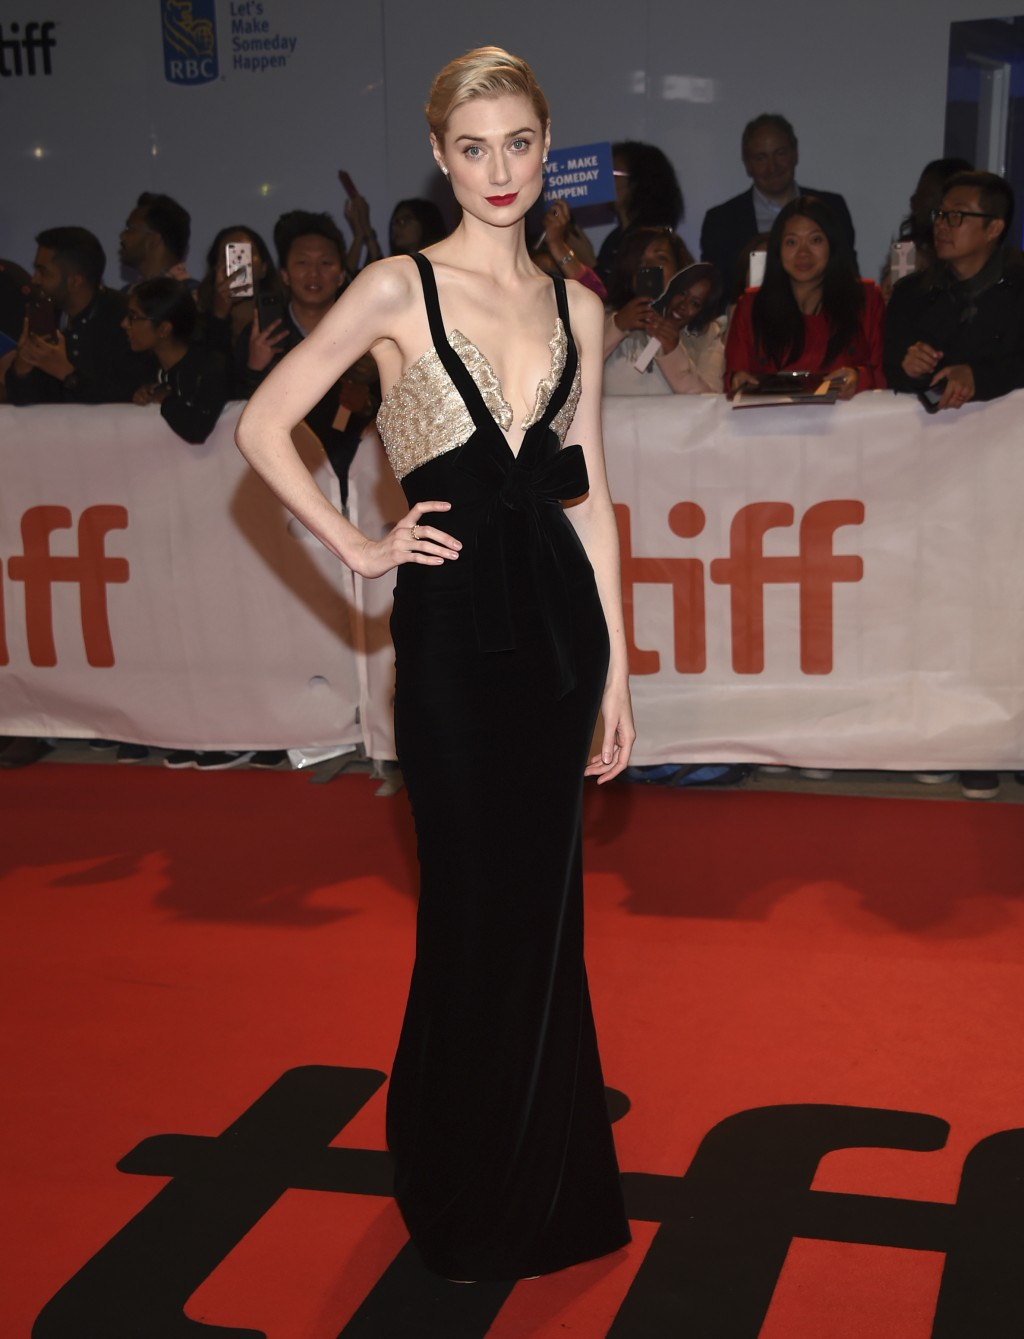 """Elizabeth Debicki attends the premiere for """"Widows"""" on day 3 of the Toronto International Film Festival at Roy Thomson Hall on Saturday, Sept. 8, 2018"""